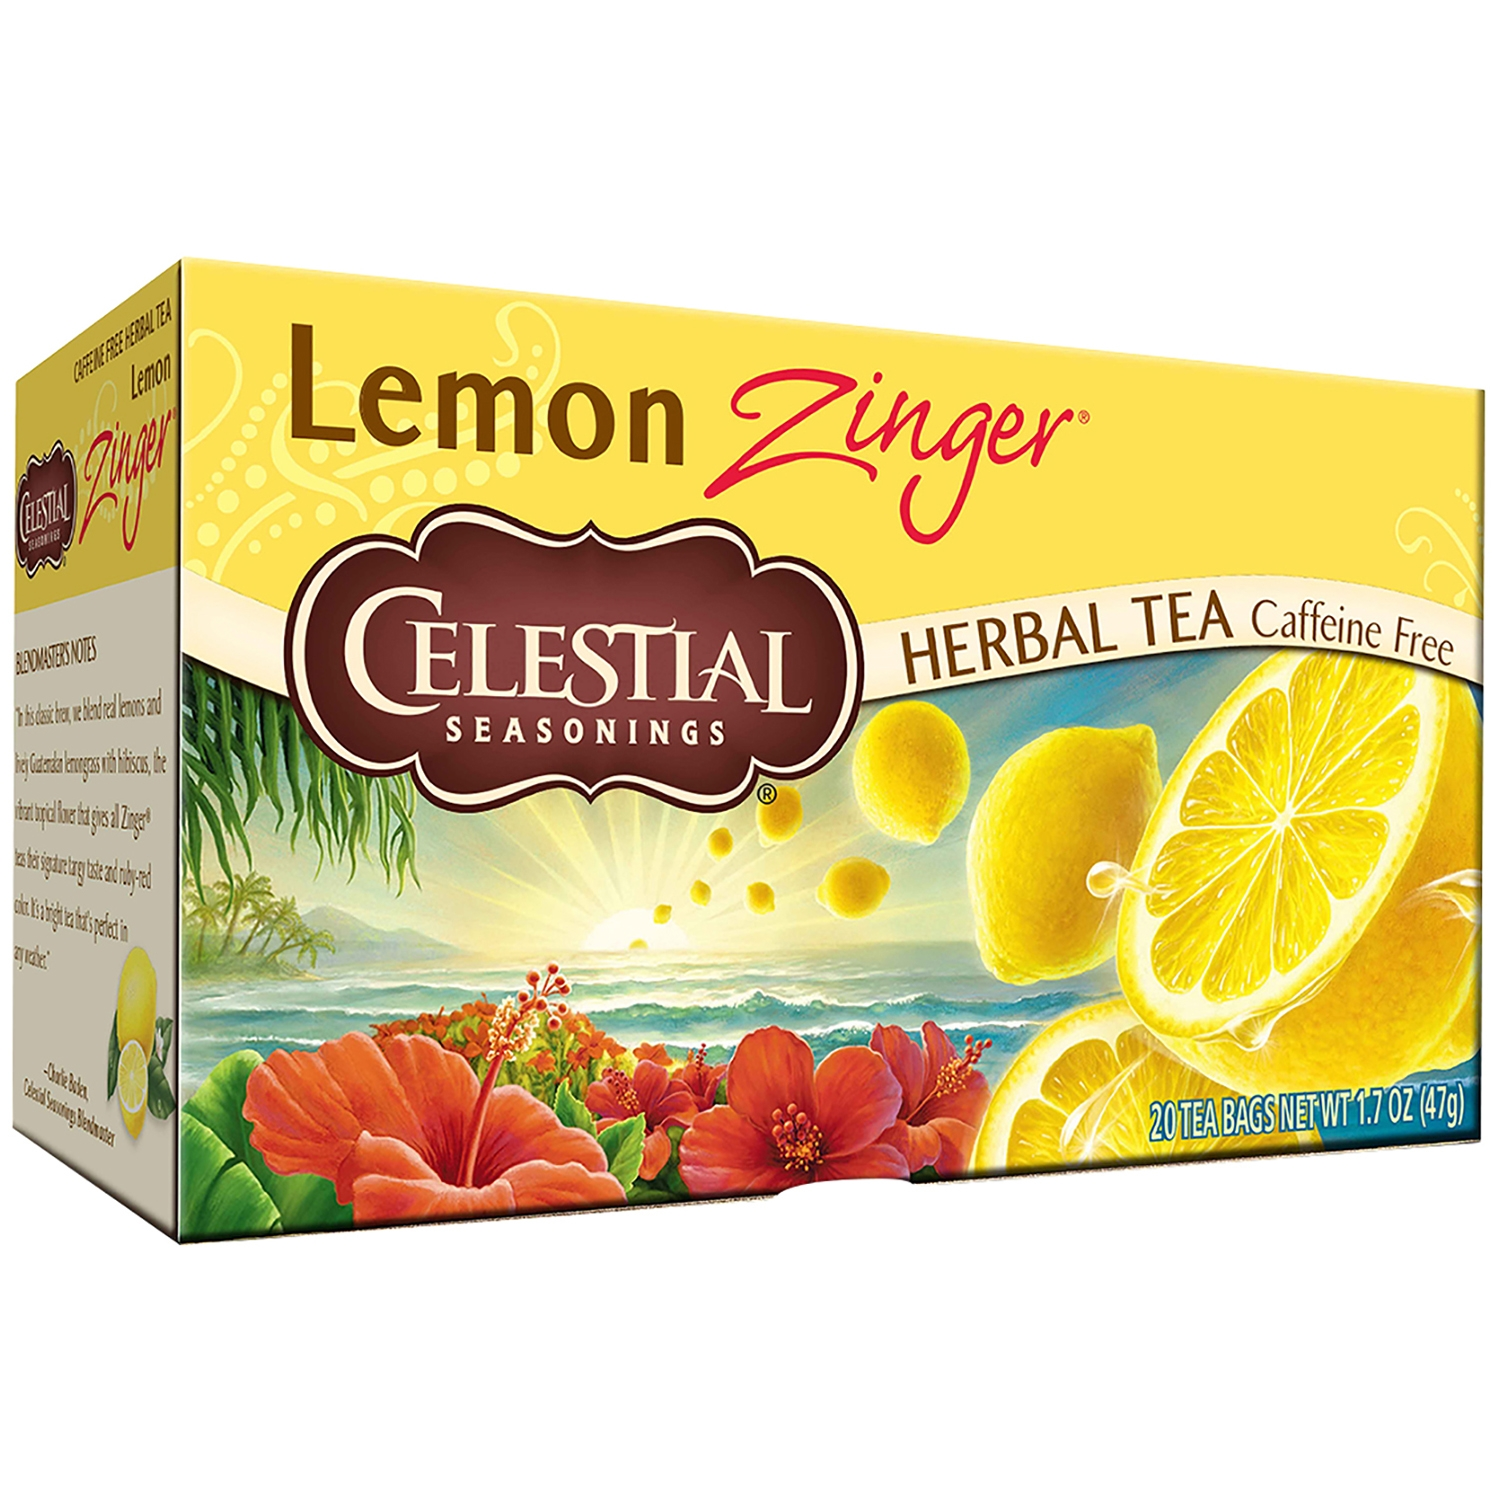 Celestial Seasonings Lemon Zinger Herbal Tea Bags, 20 count